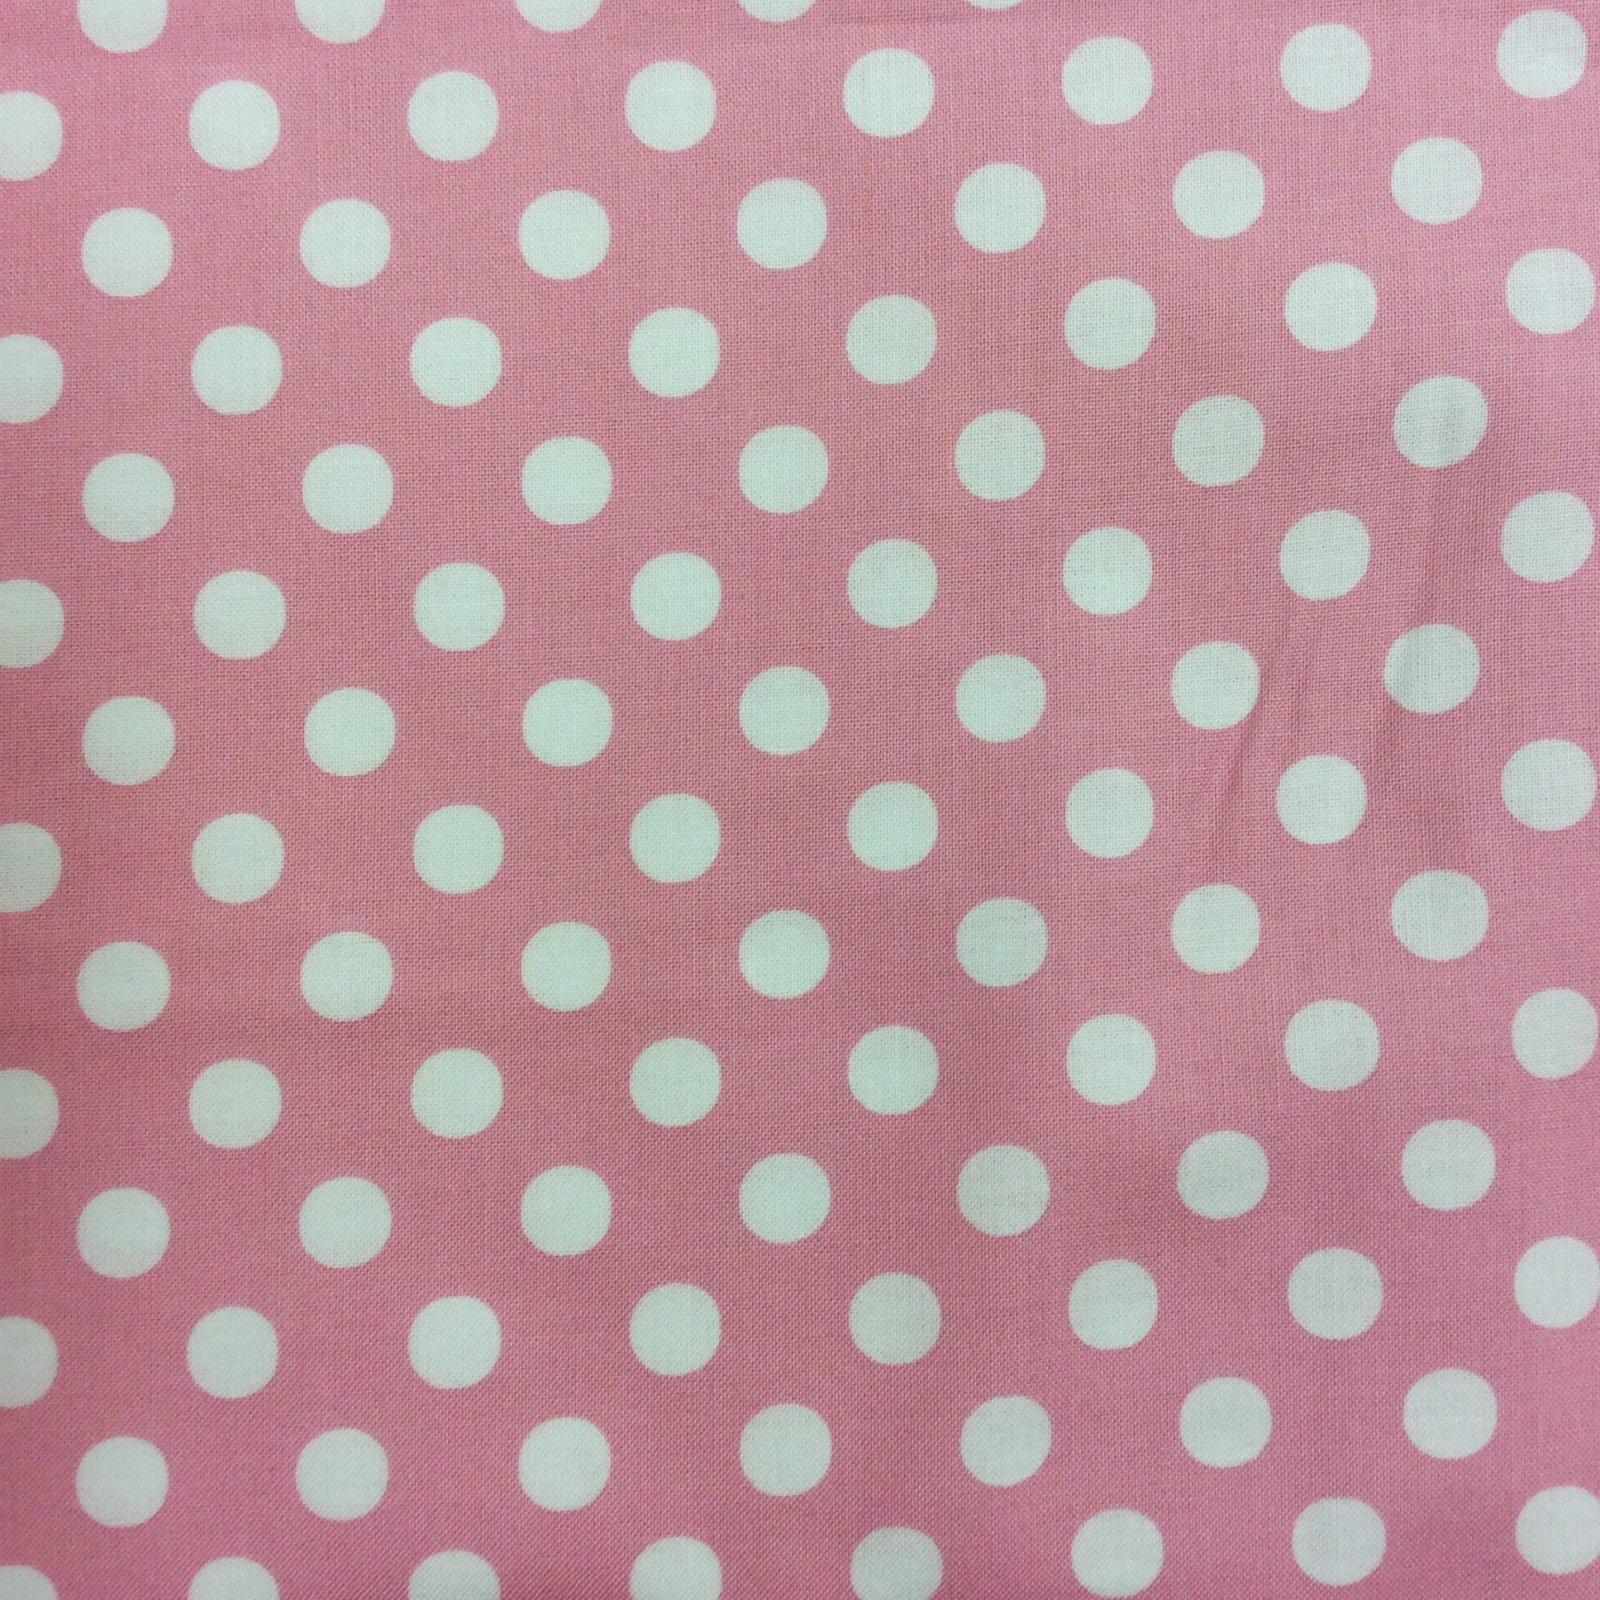 Md71 polka dot cute baby princess fairy pink cotton candy for Cute baby fabric